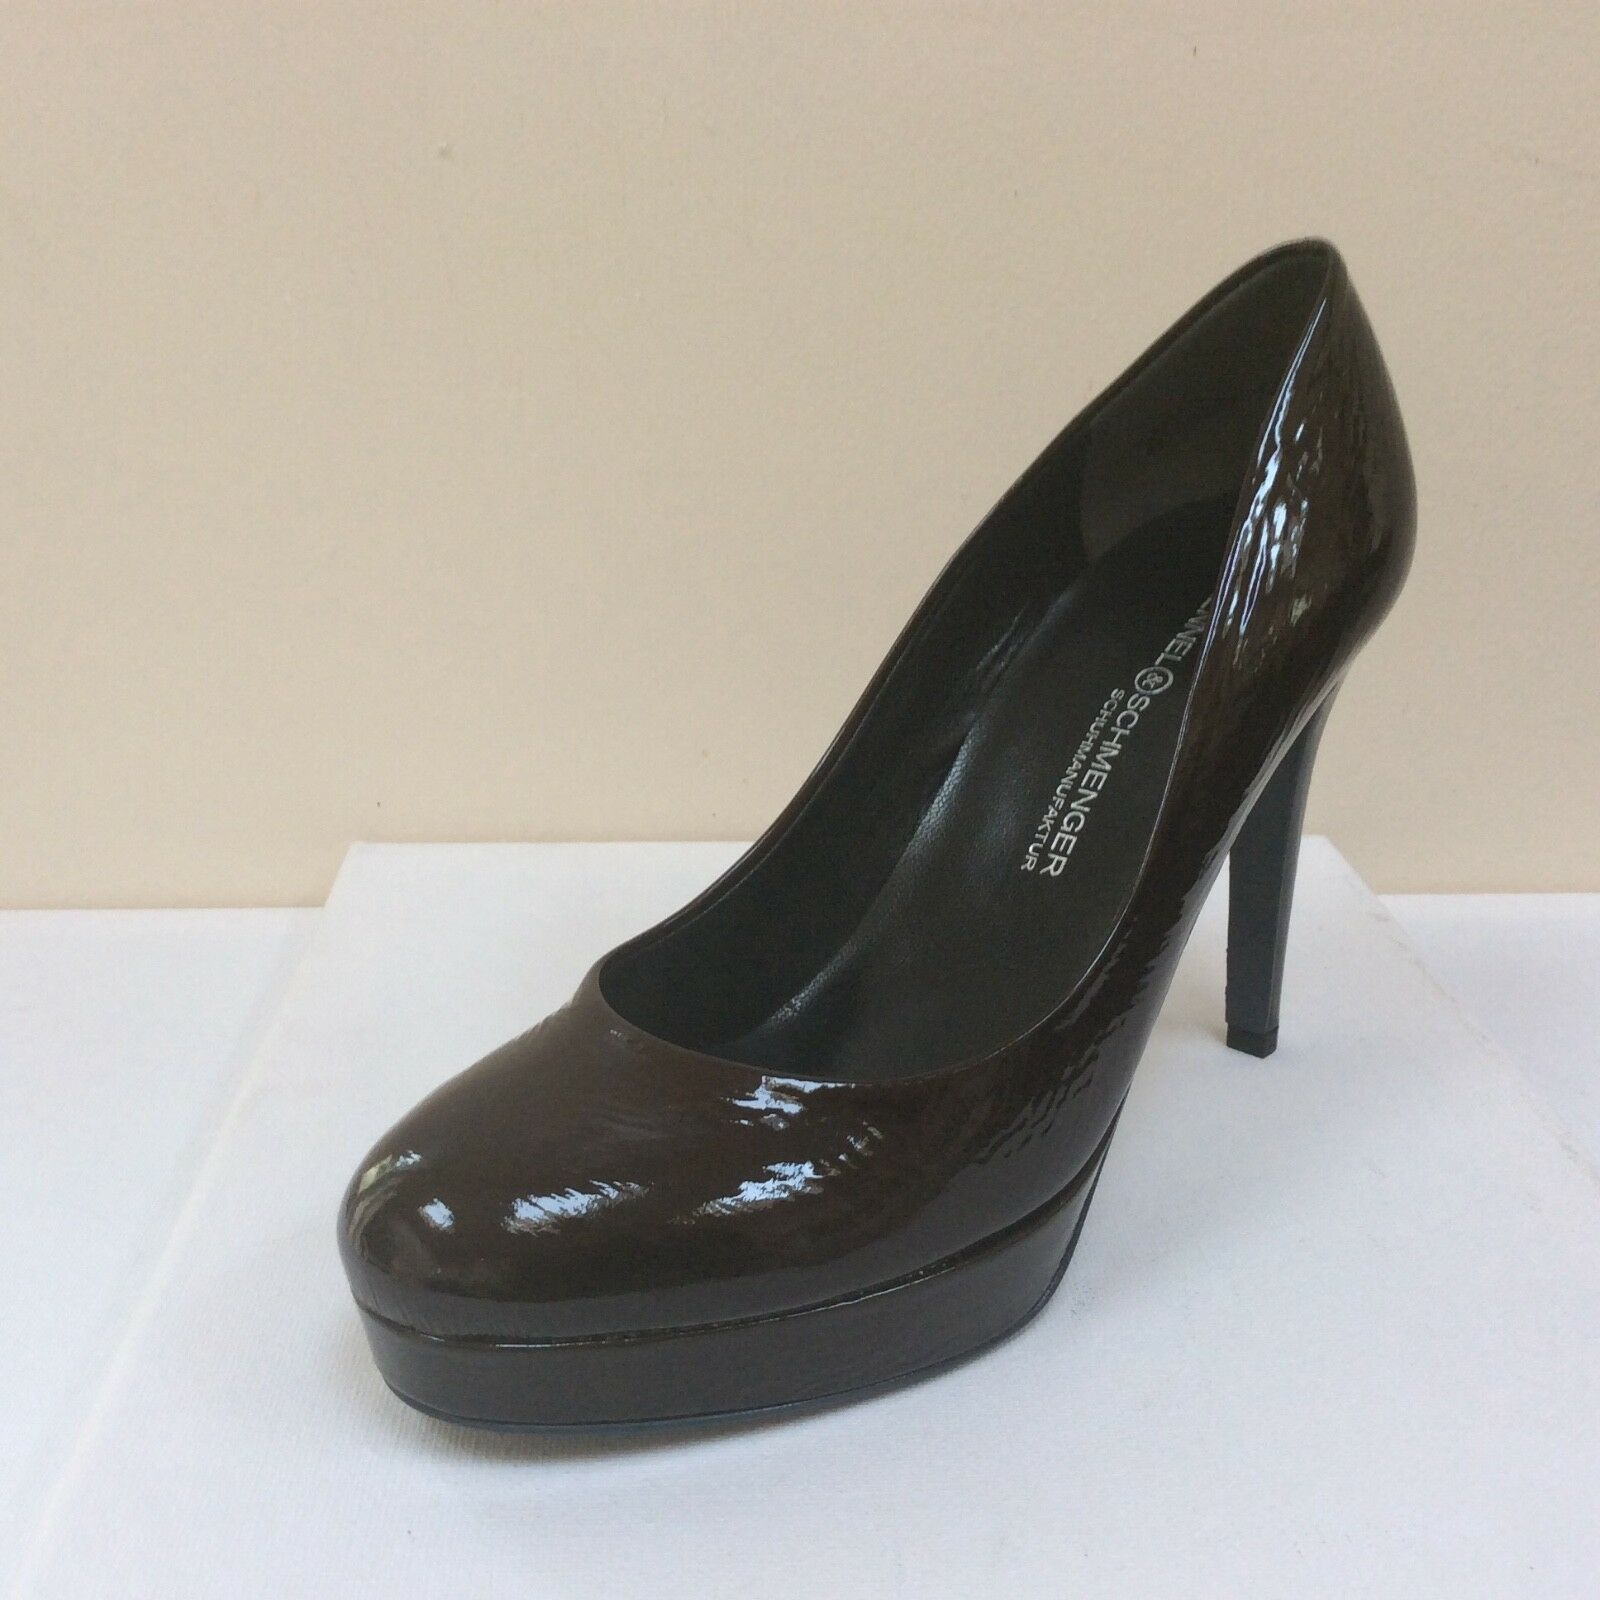 K&S Sheyla dark brown patent platform courts, UK 3.5/EU 36.5,   BNWB